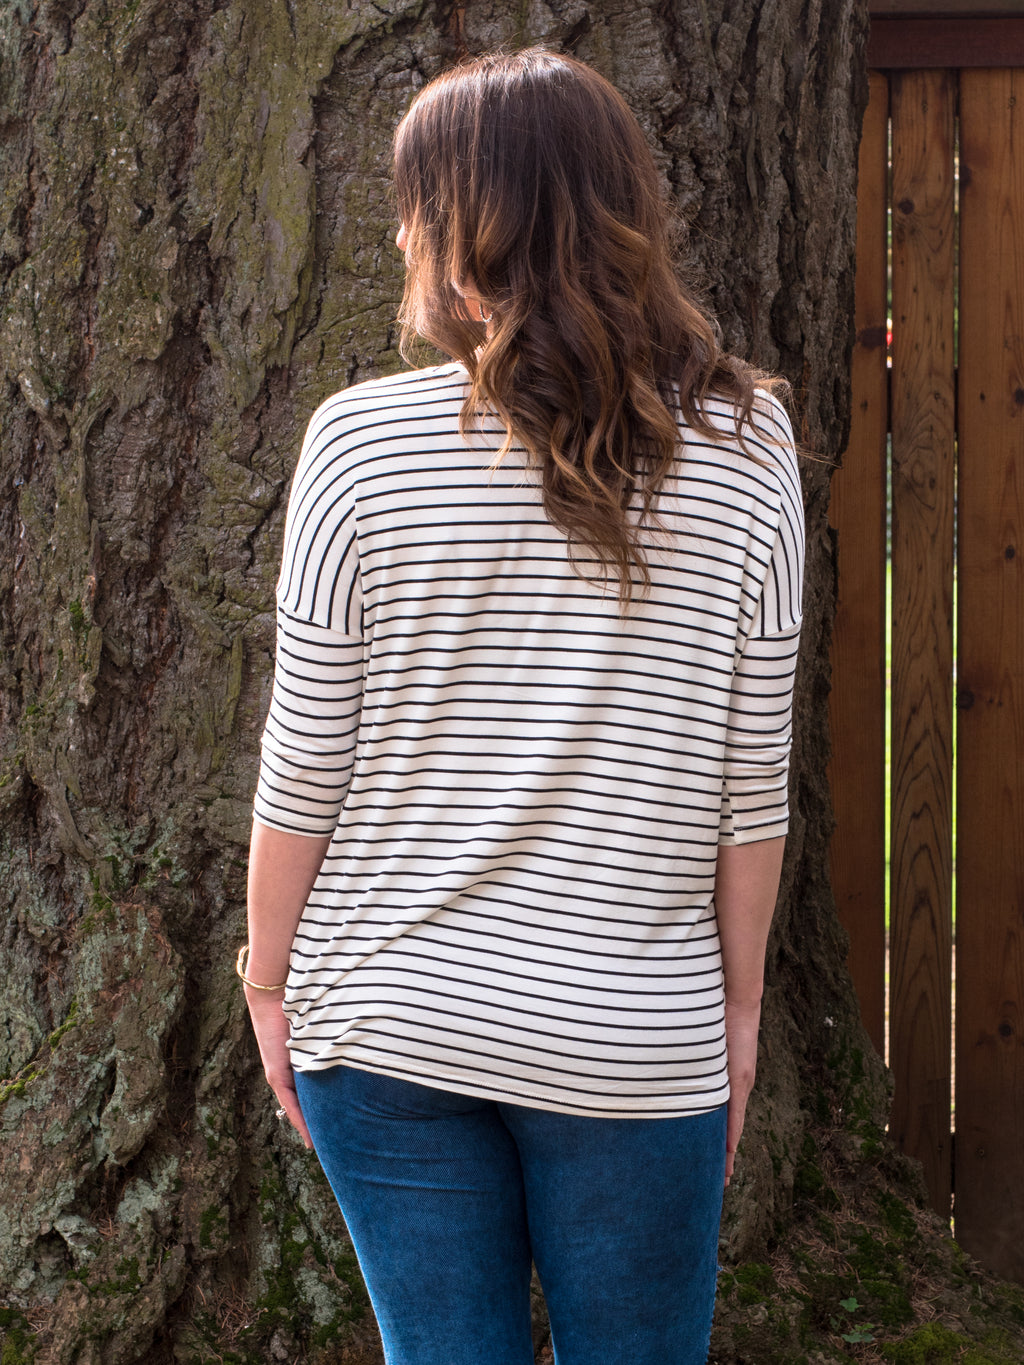 Knotted Little Tee in Black & White Stripe - Enclothe Boutique